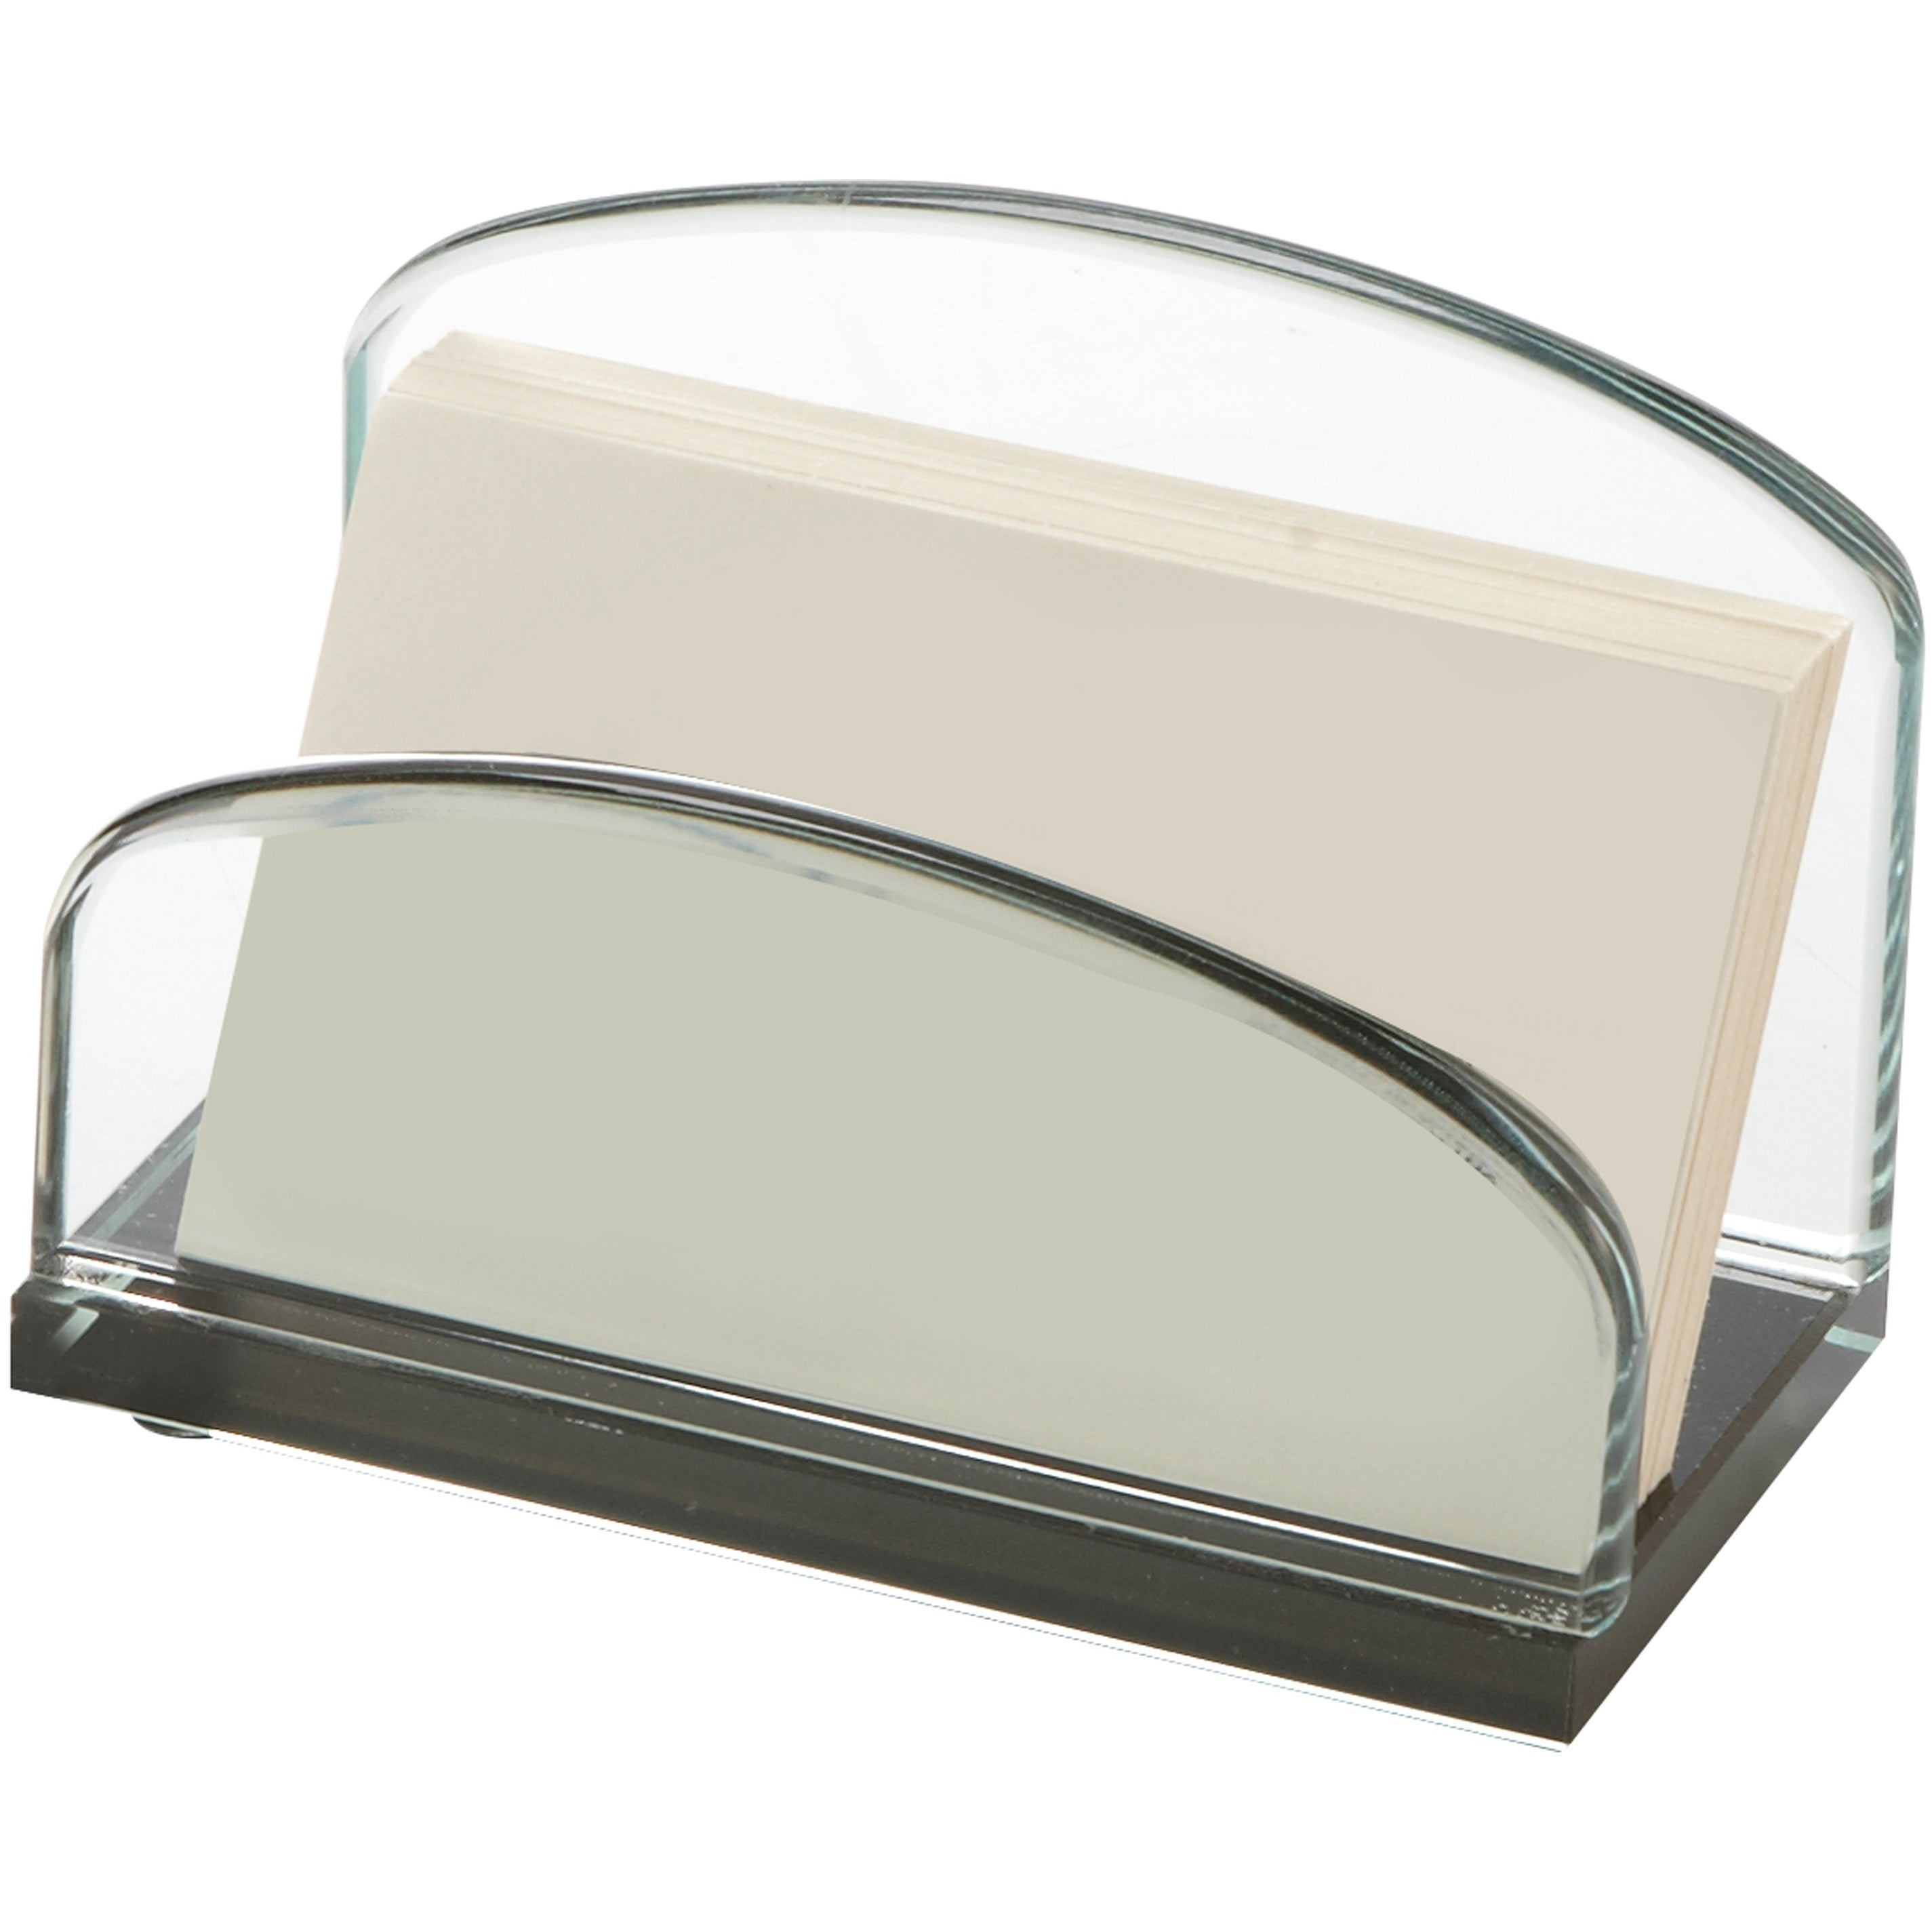 Storex Executive Business Card Holder, Glass - Free Shipping On ...